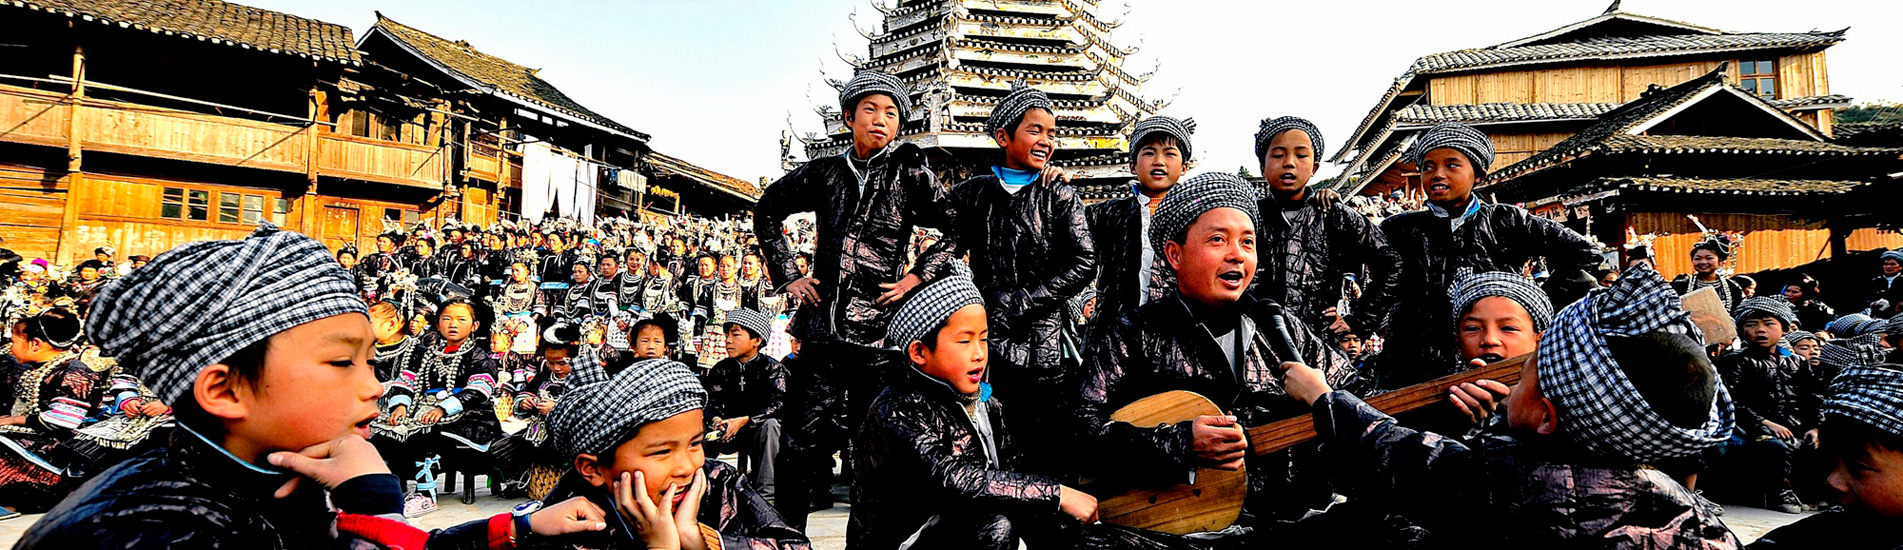 the minority people in Guizhou Province